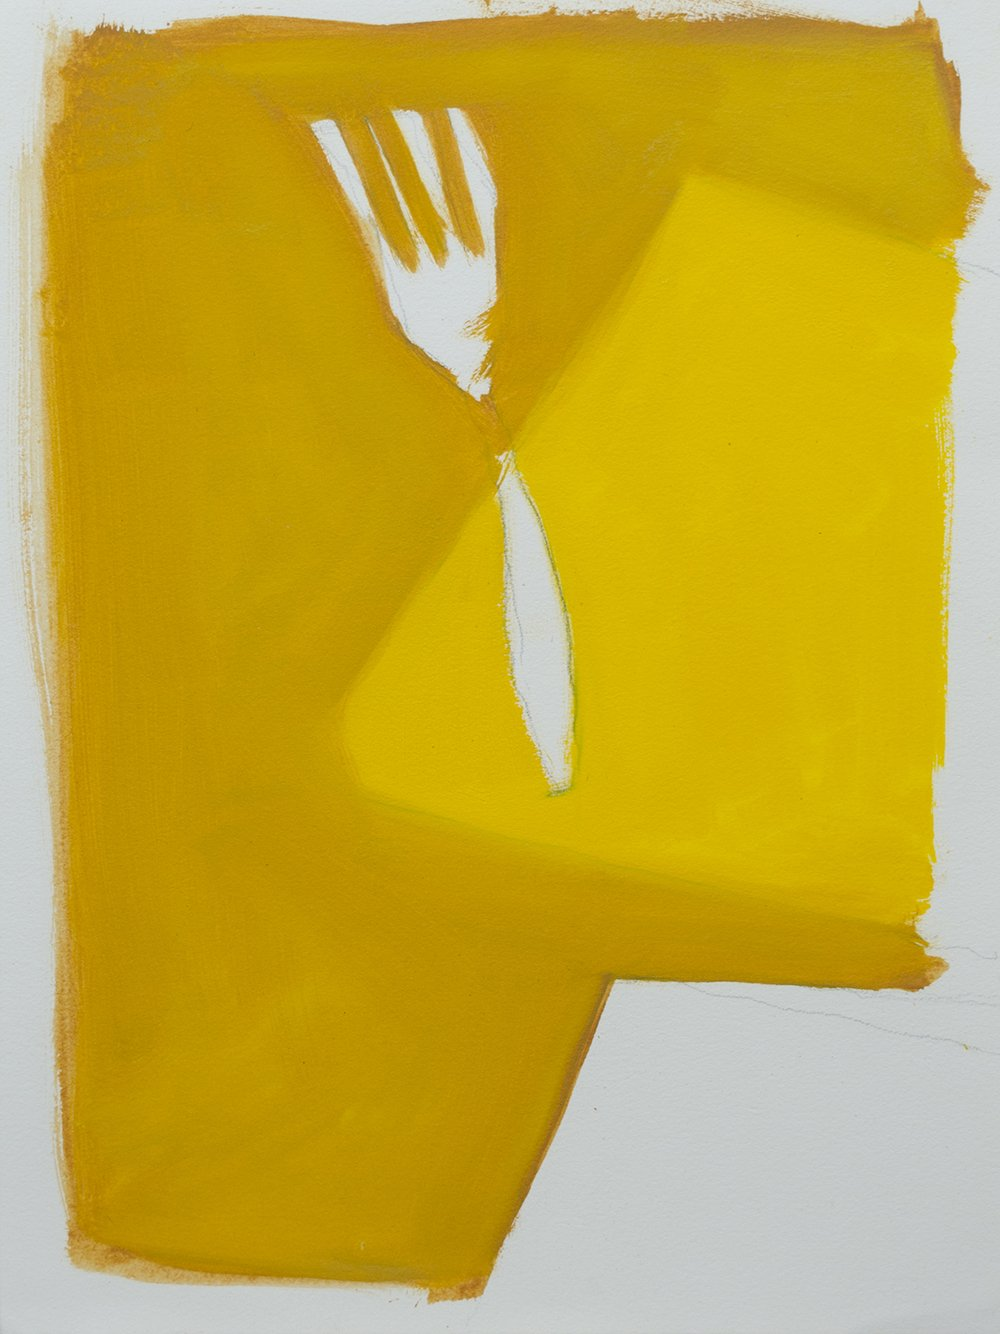 Oil and pencil image on oil paper of fork with two different varieties of yellow paint as background